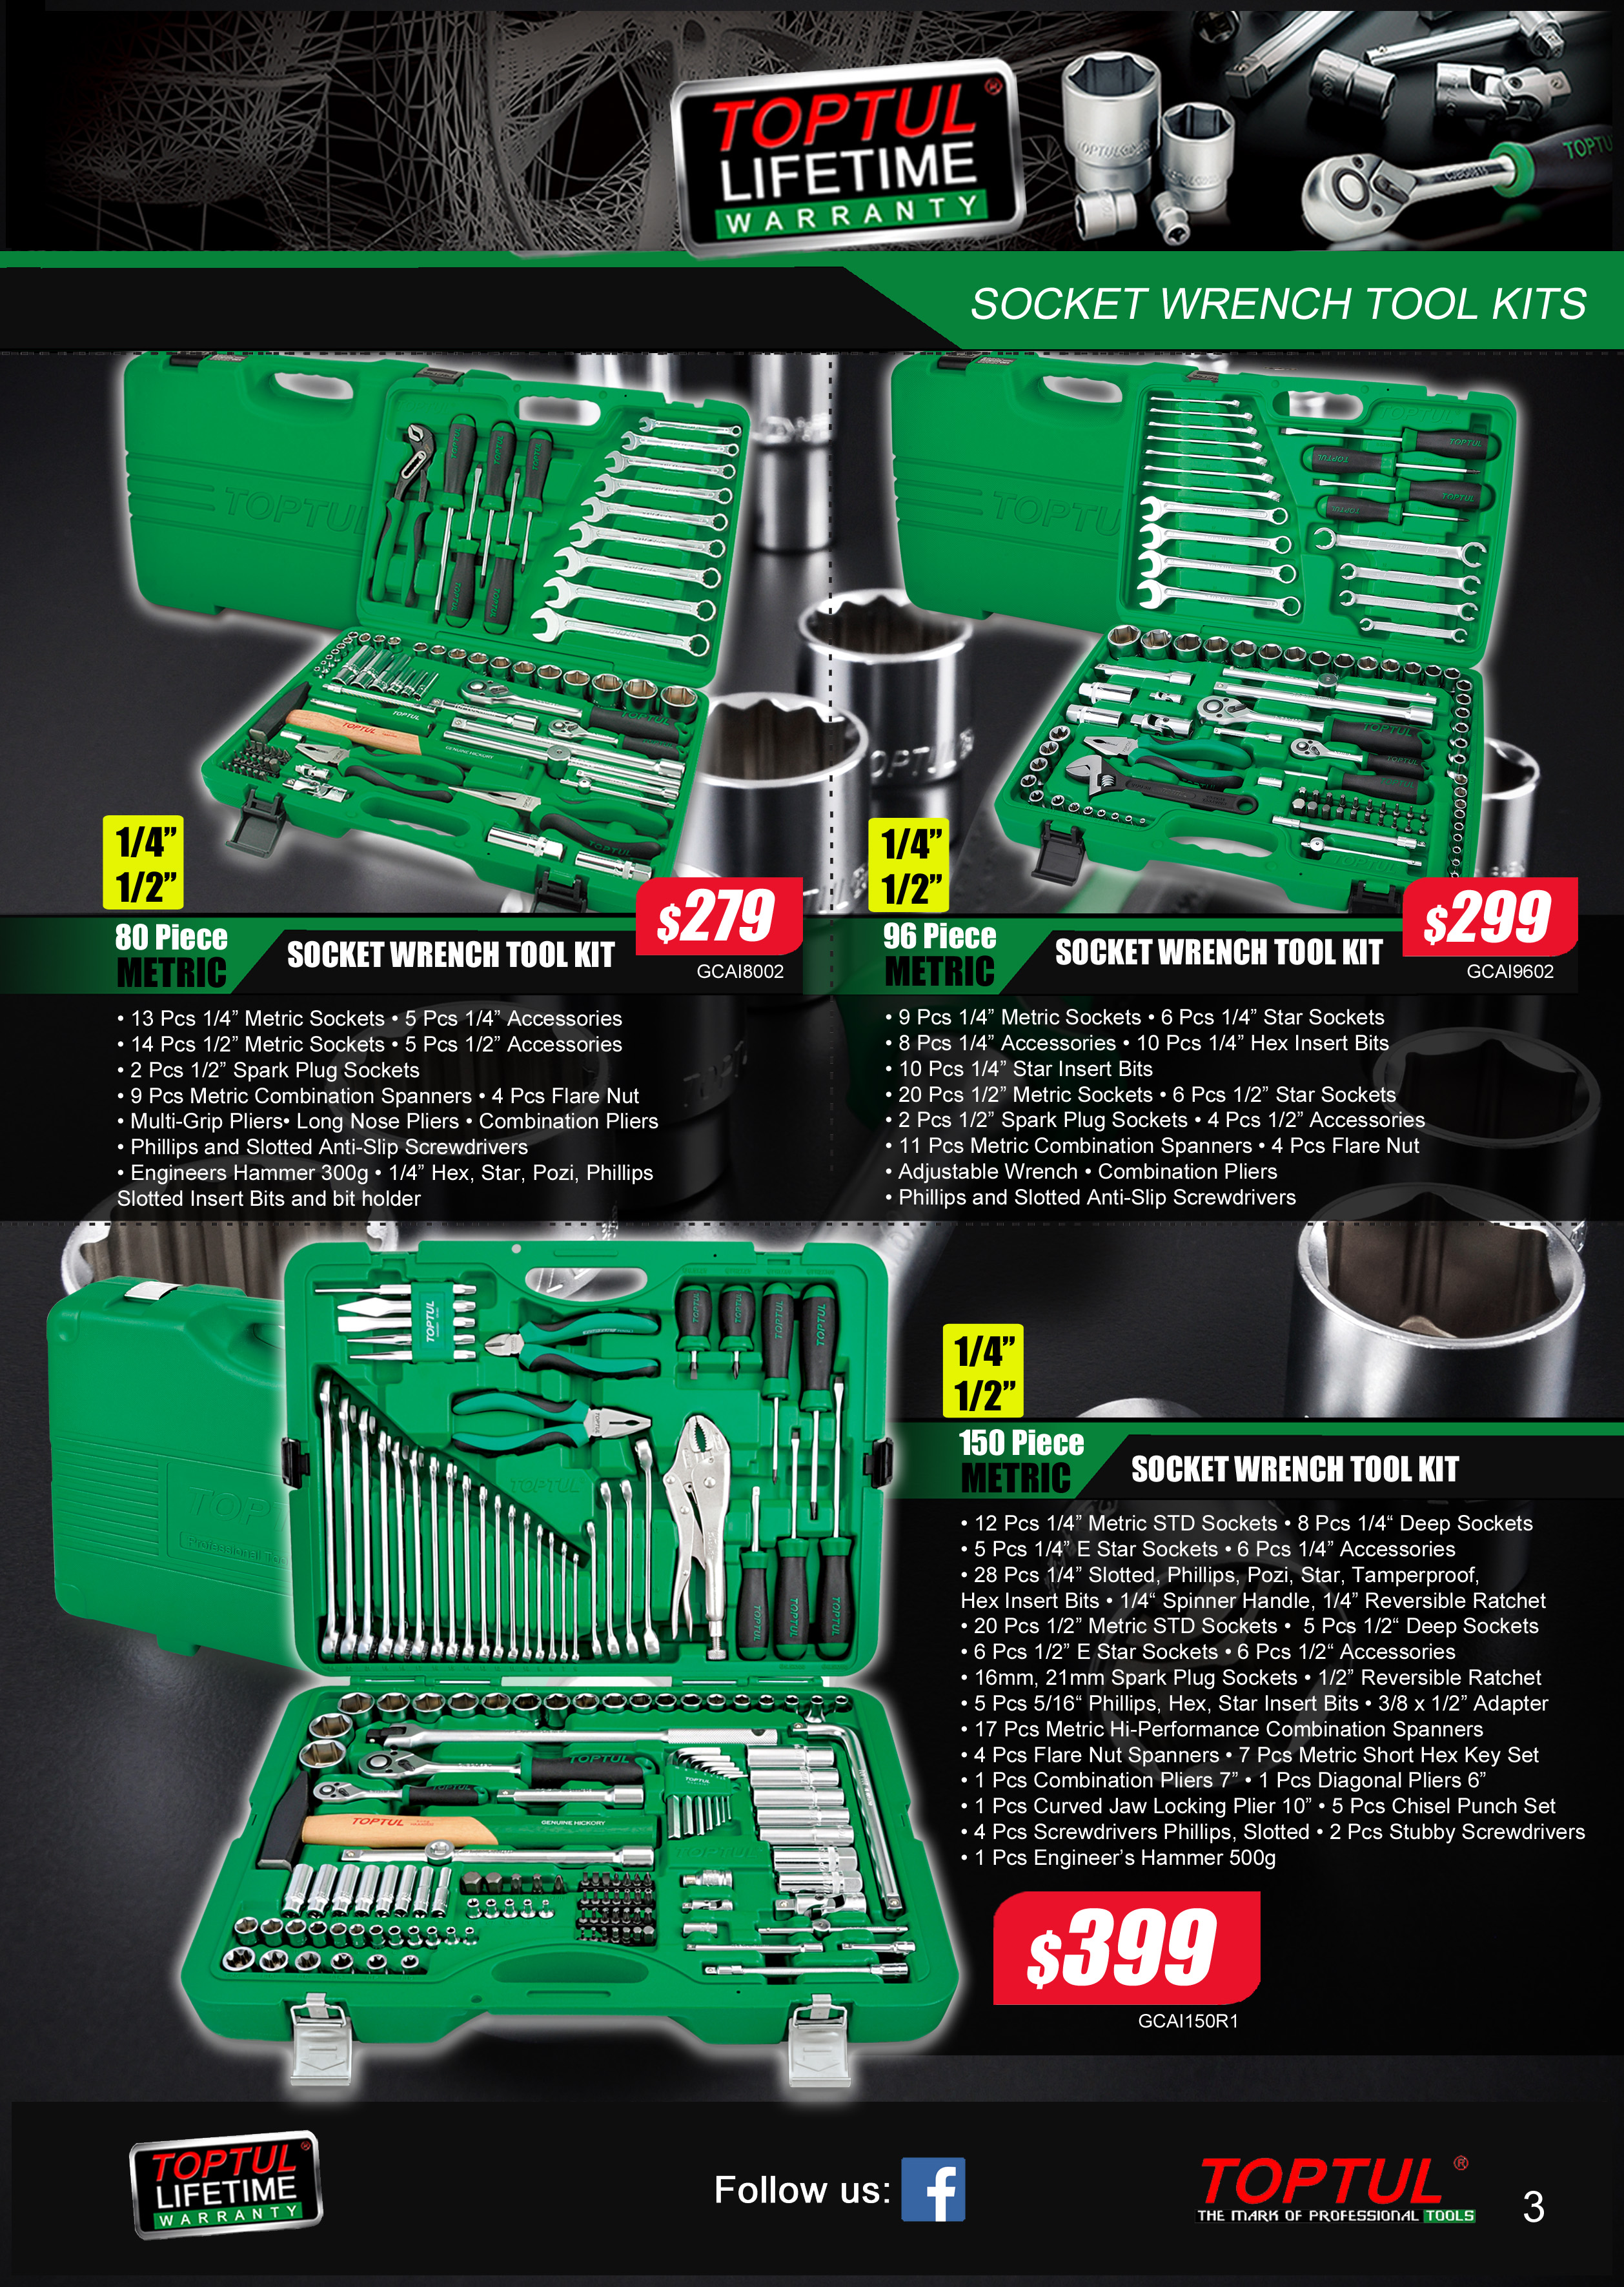 toptul-page-3-socket-wrench-setsv2-copy.jpg